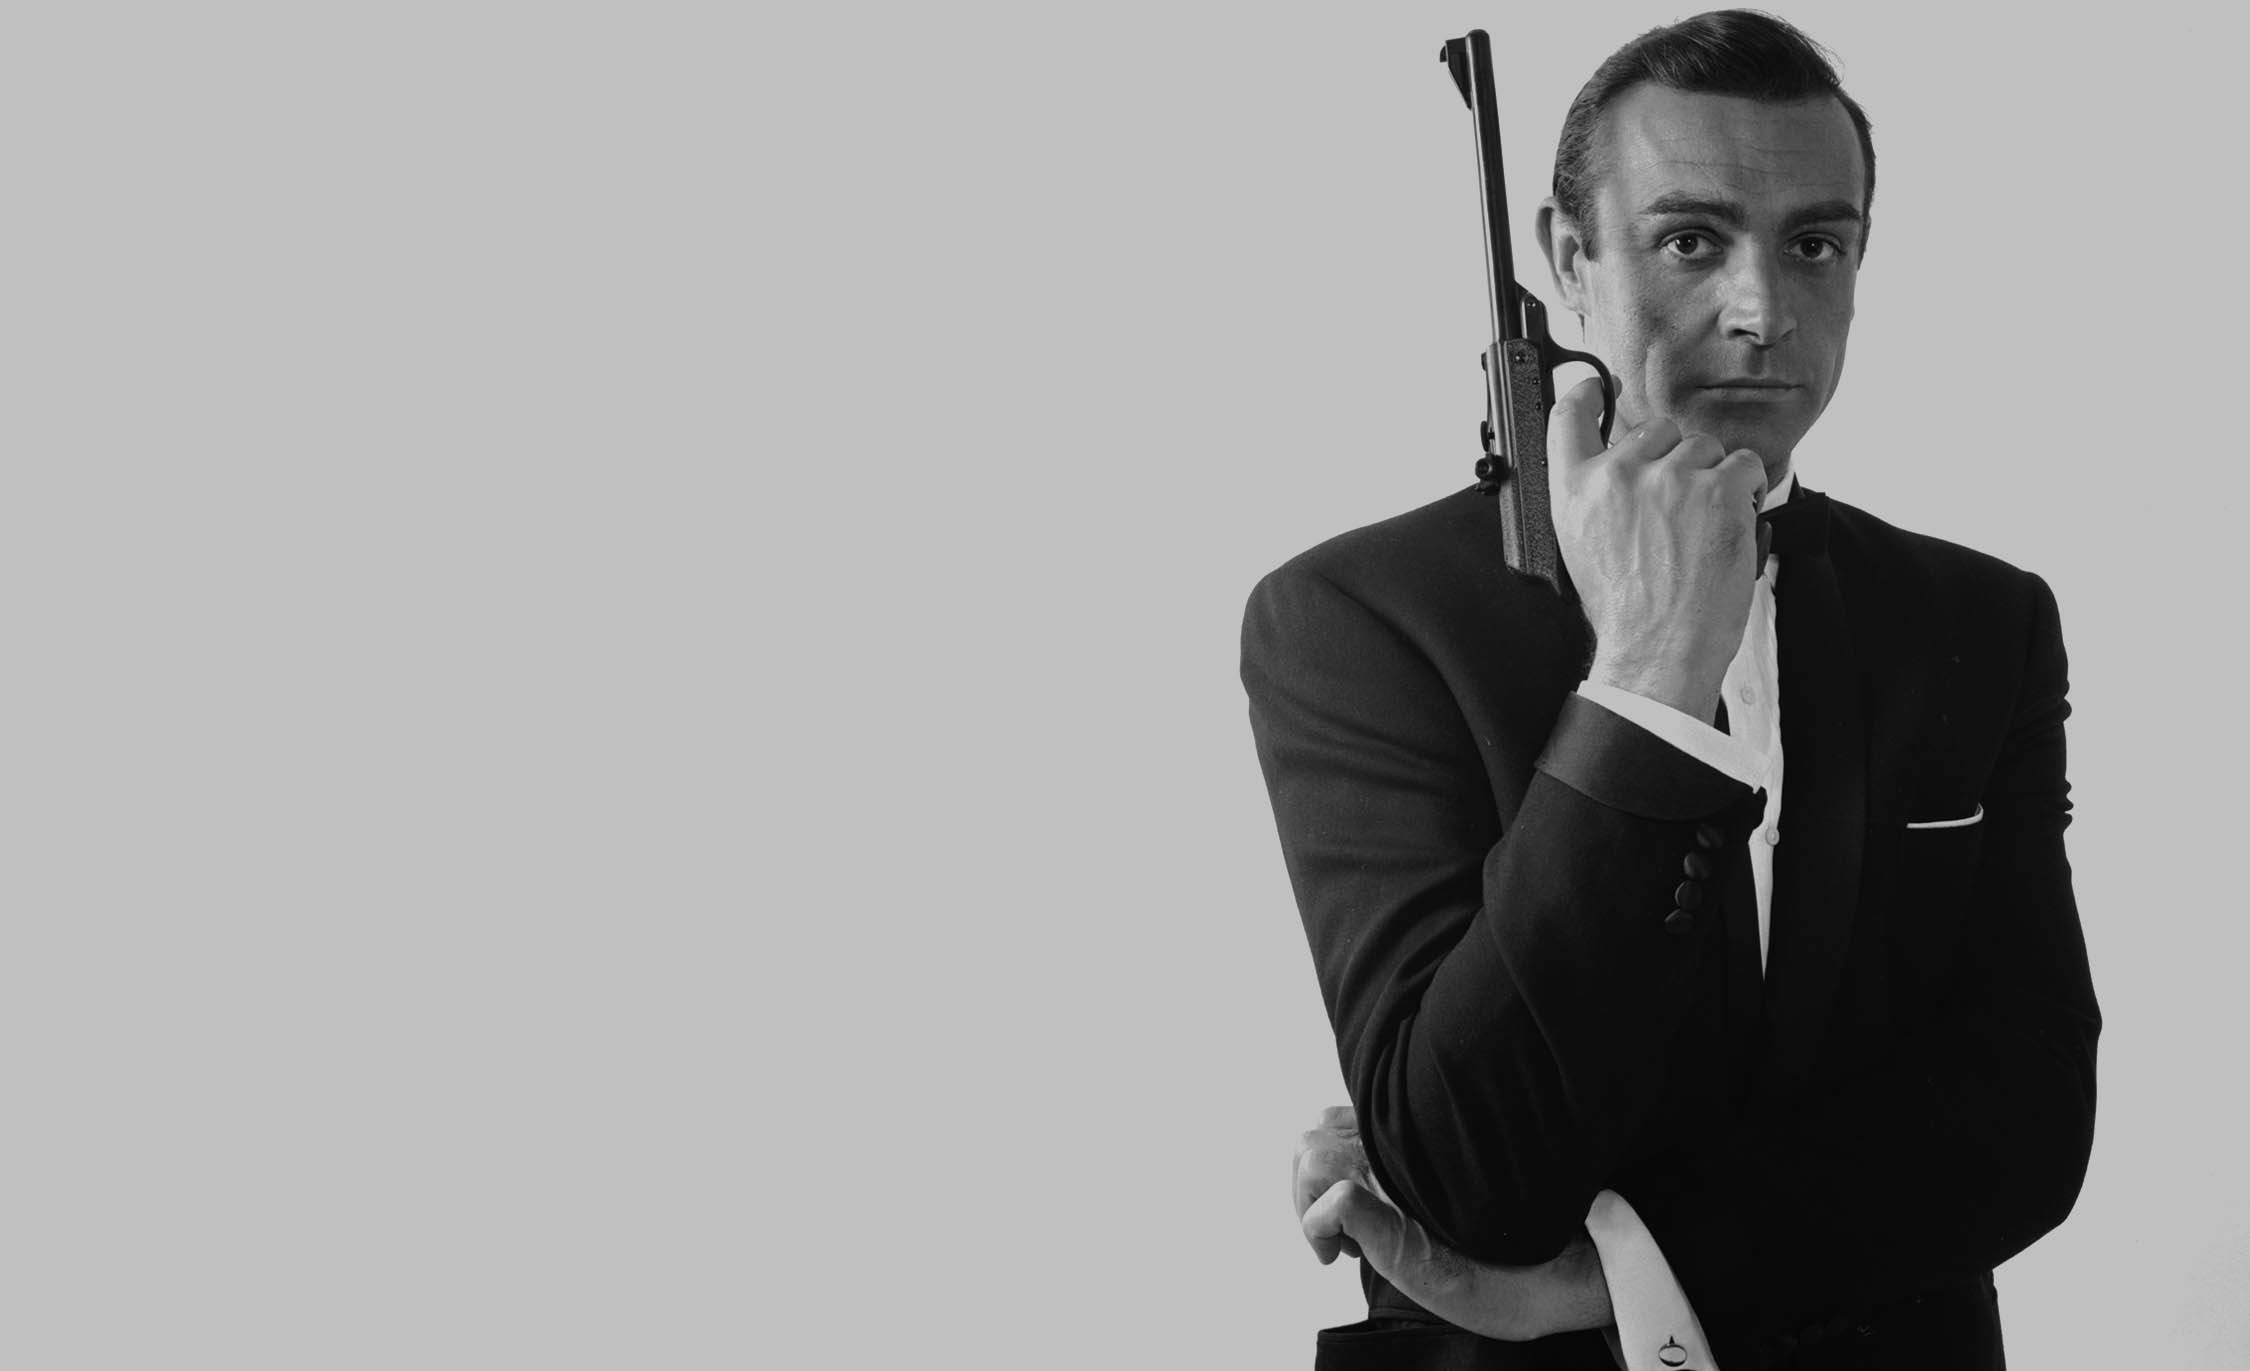 connery the best bond films starring sean connery